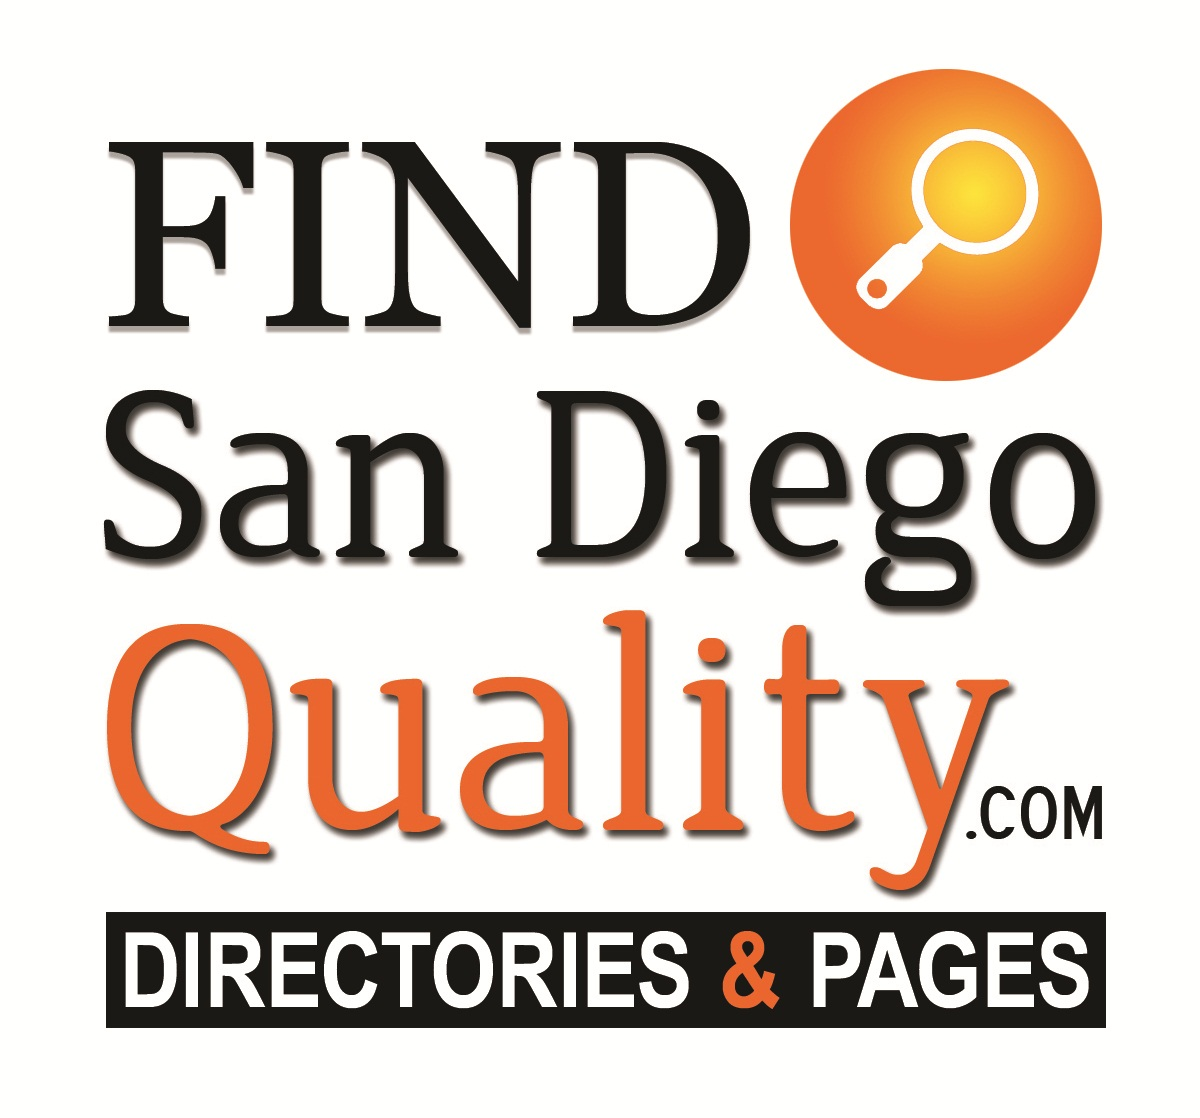 Find San Diego Quality - www.FindSanDiegoQuality.com